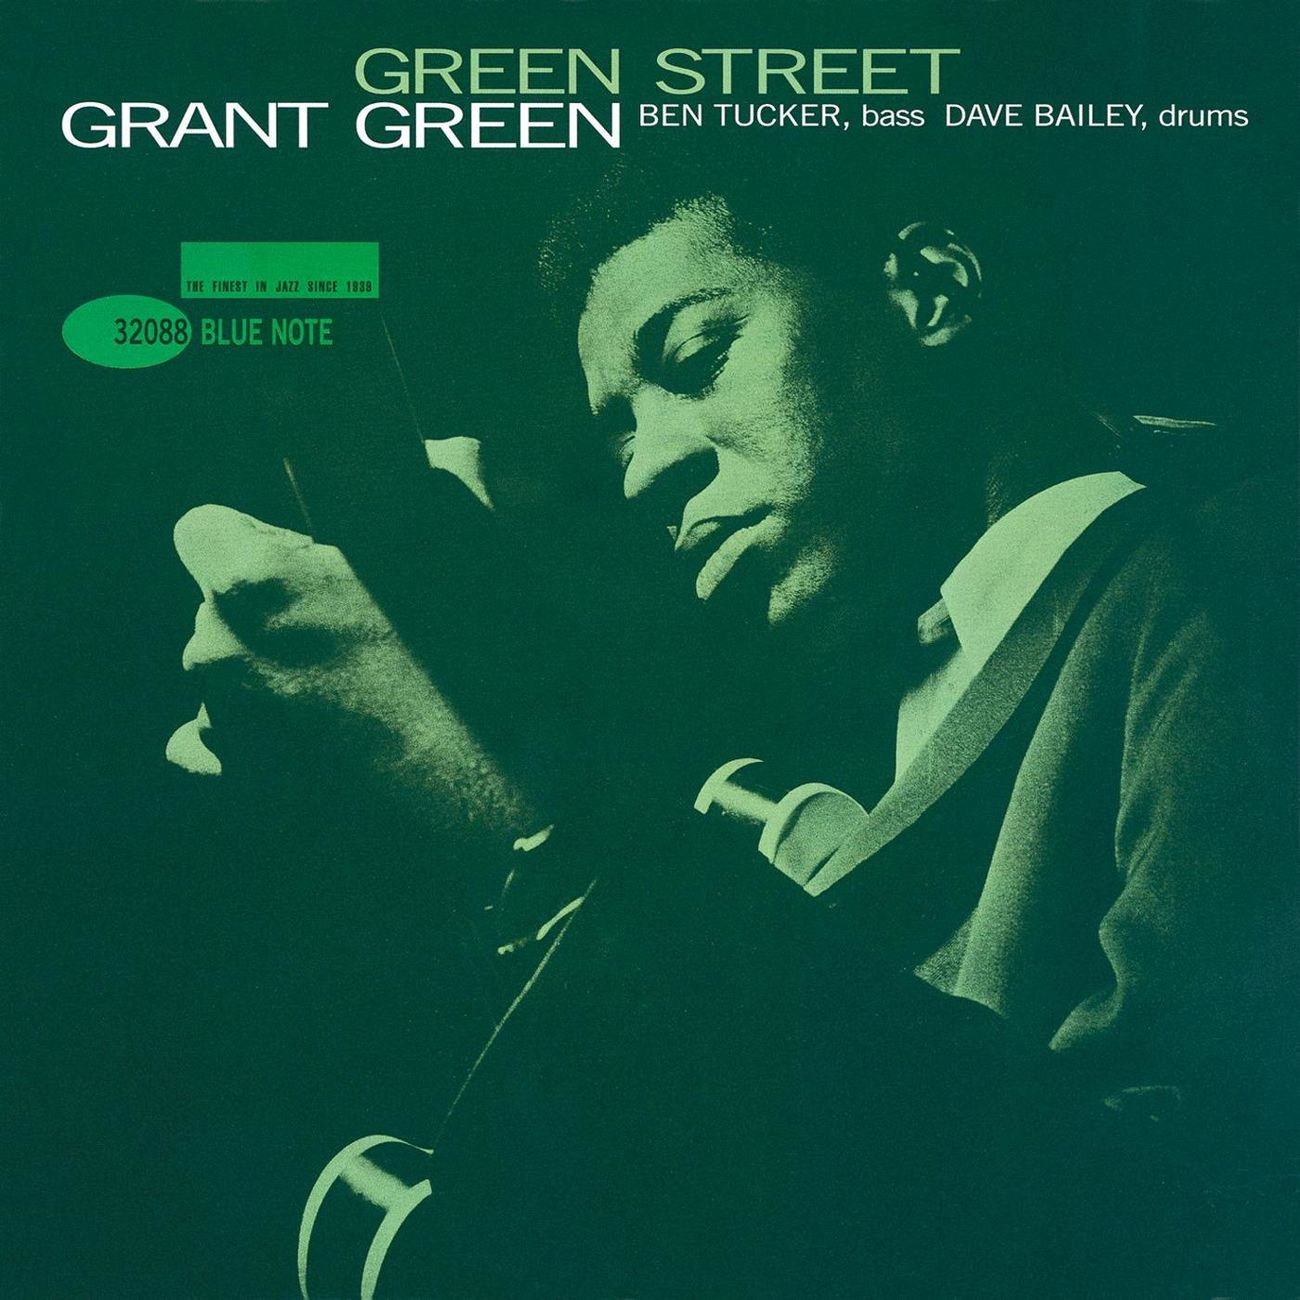 a review of solid a jazz album featuring grant green on the guitar Green's first issued album as a leader was grant rediscovering the forgotten genius of jazz guitar  solid review at allmusiccom ^ grant green music sampled.